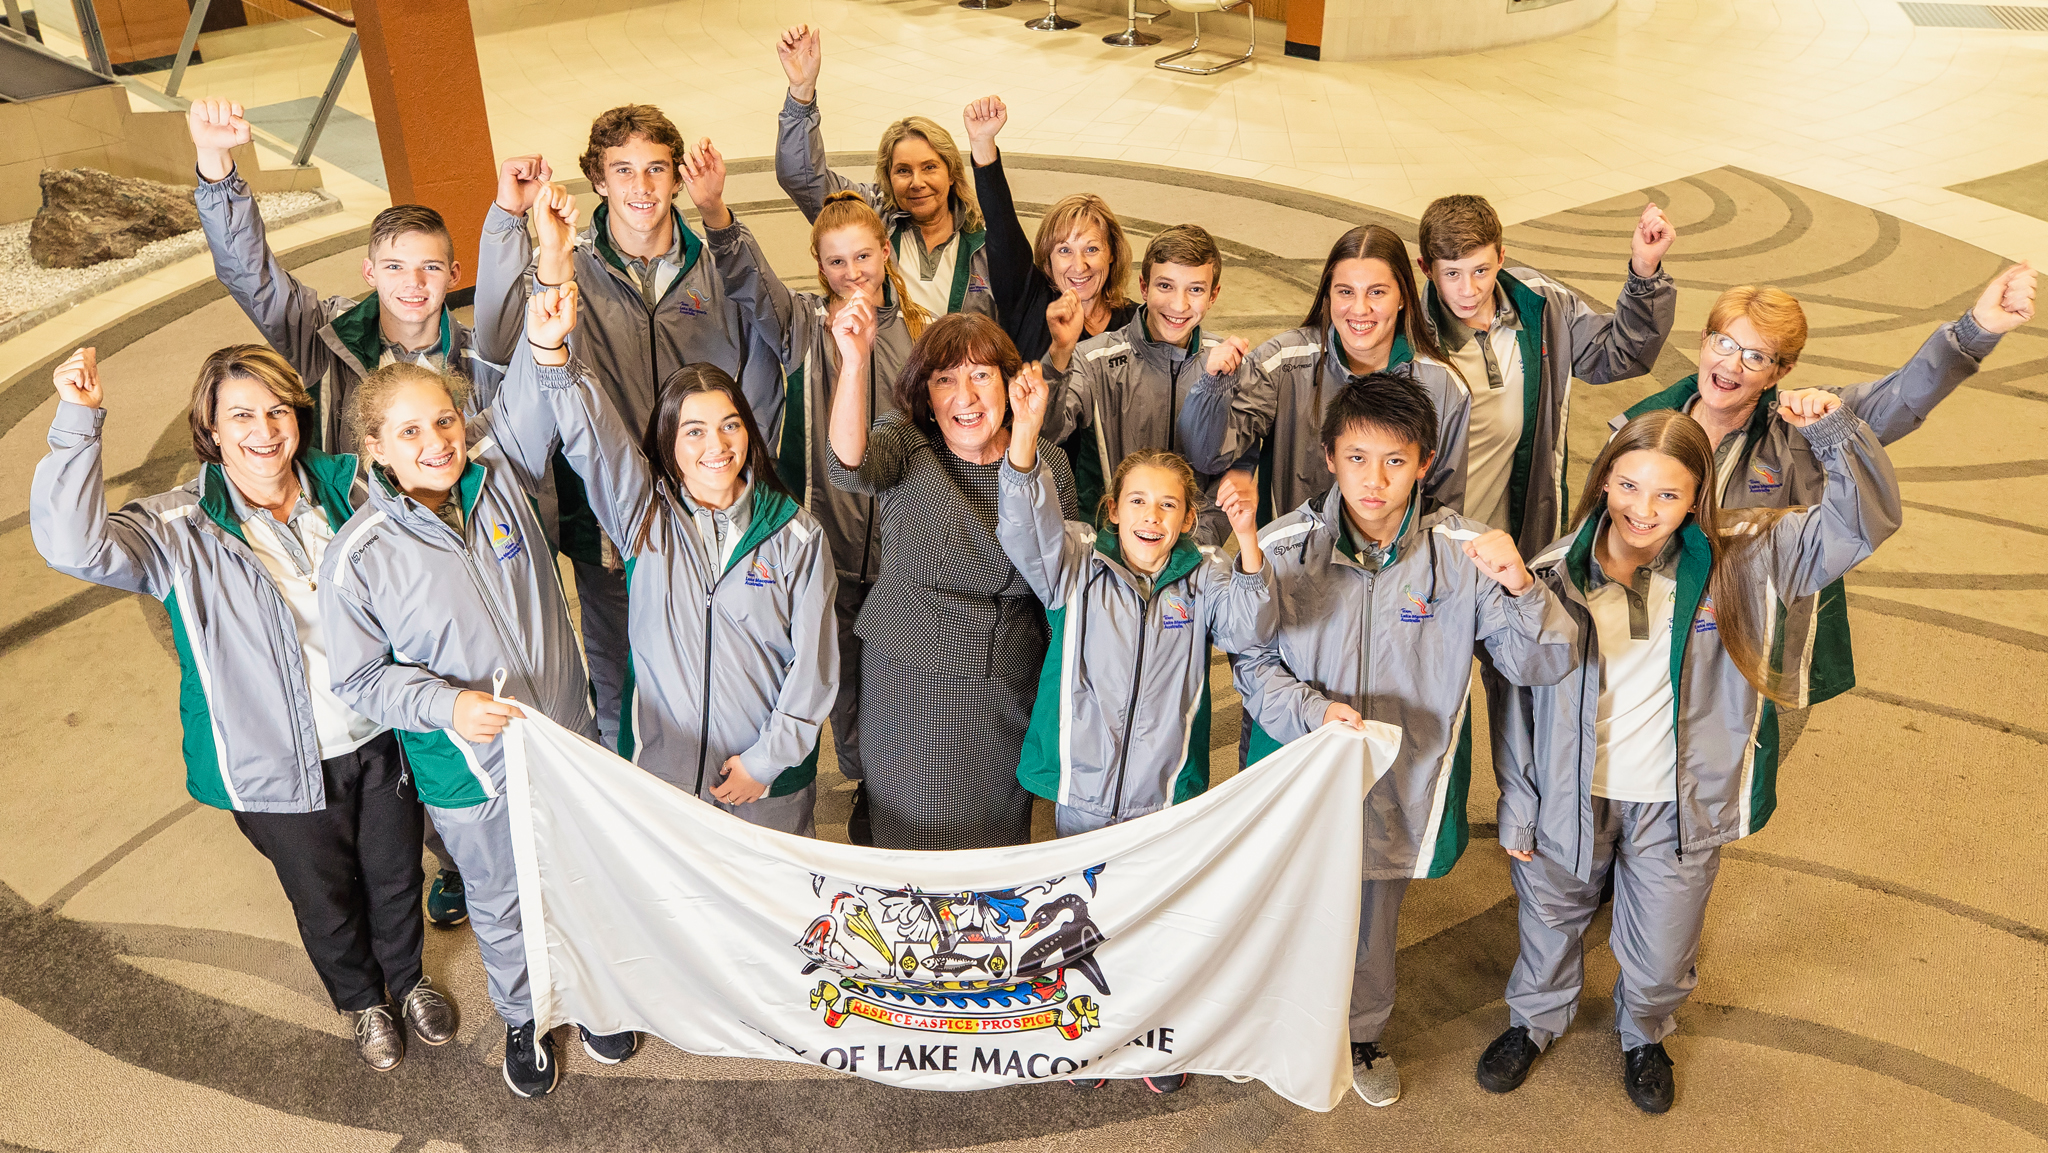 Eleven young athletes who will represent Lake Macquarie at the International Children's Games in Jerusalem next month were guests of honour at a ceremony at Lake Macquarie City Council on Tuesday 12 June 2018.